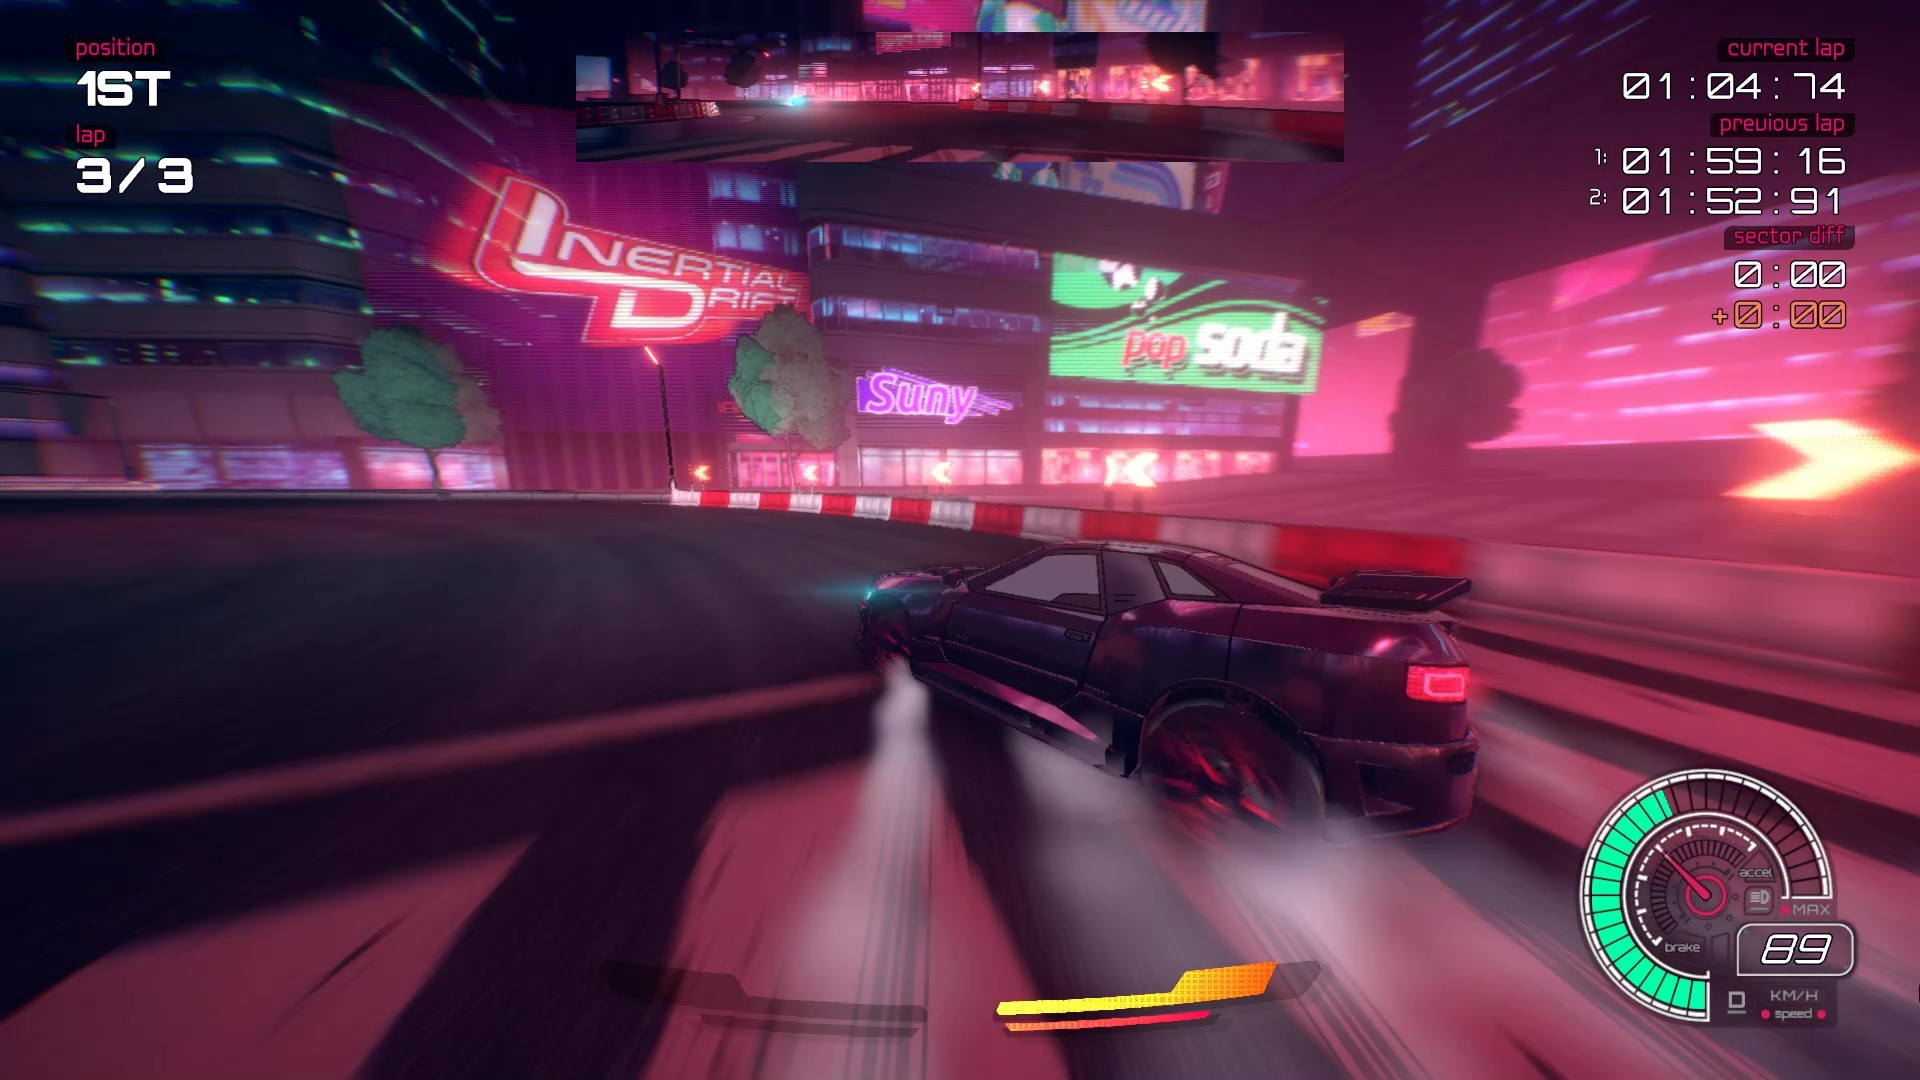 Find the best gaming PC for Inertial Drift